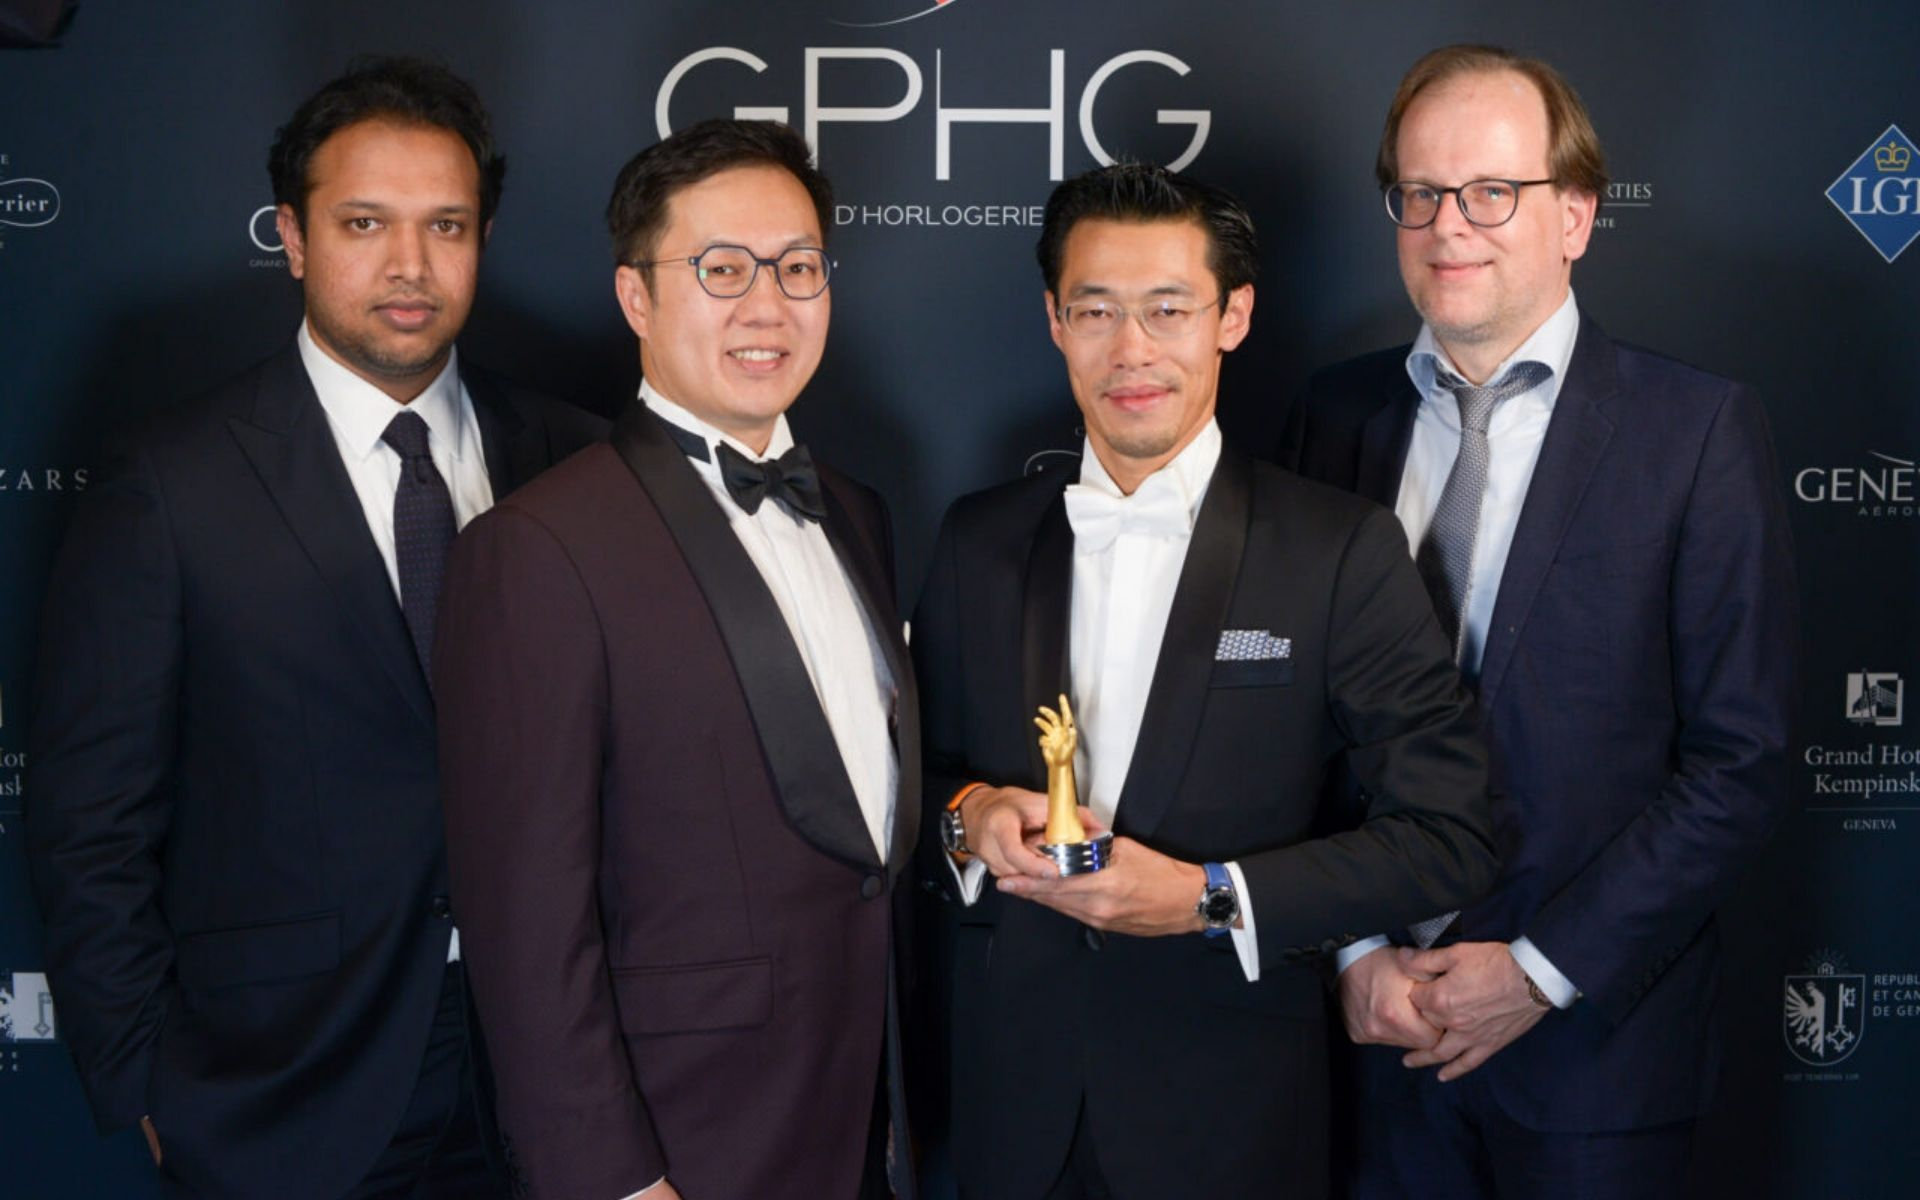 Ming From Malaysia Wins A Prize At 2019 Grand Prix D'Horlogerie De Geneve That Awards Excellence In Watchmaking